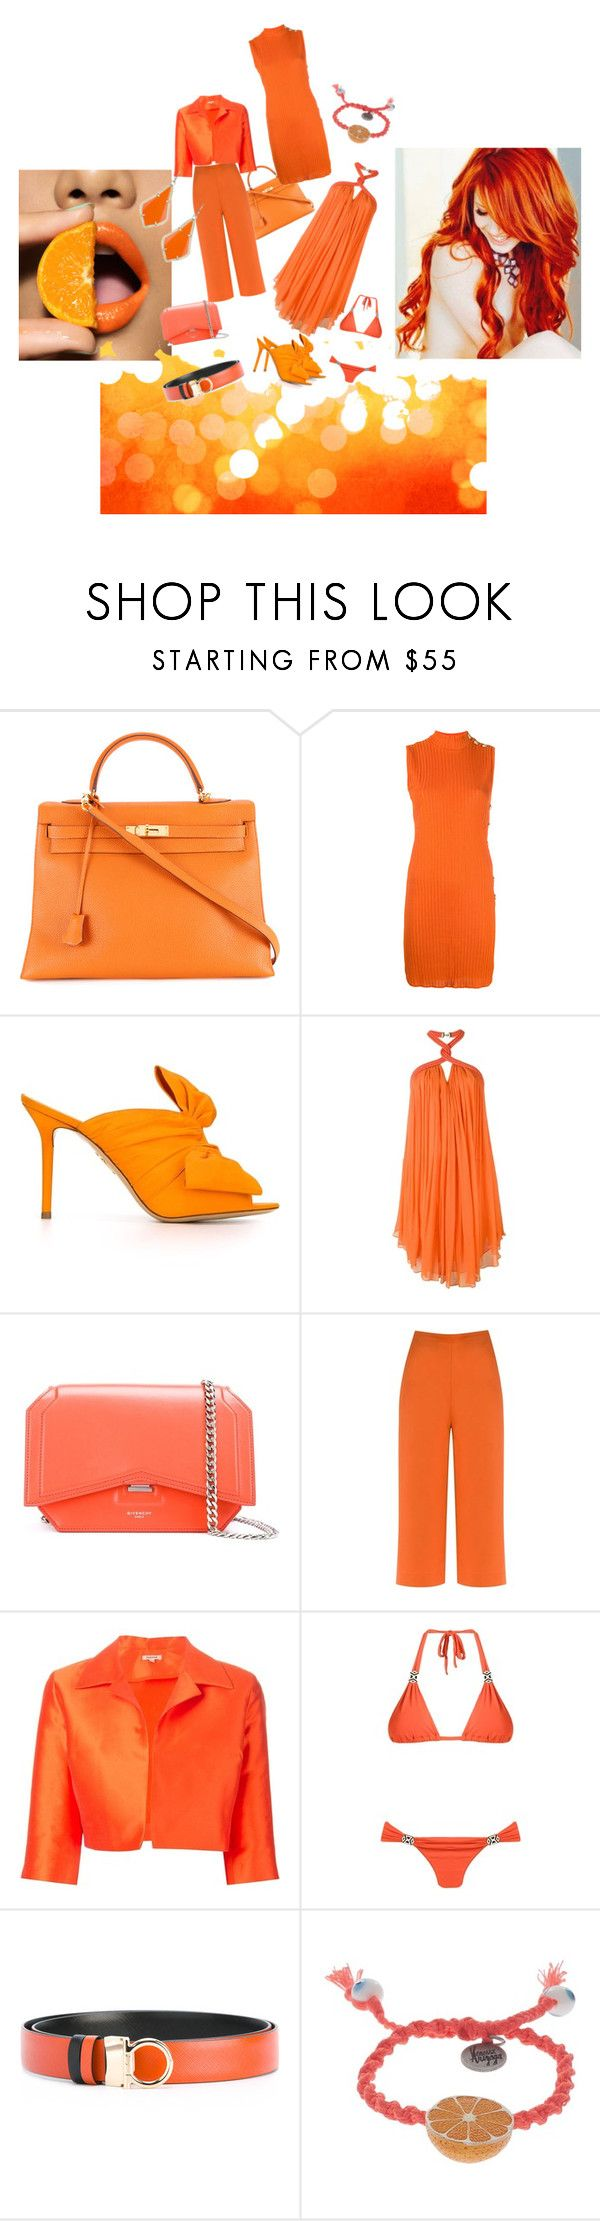 """Pulpy Orange..**"" by yagna ❤ liked on Polyvore featuring Hermès, Balmain, Charlotte Olympia, Jay Ahr, Givenchy, Andrea Marques, P.A.R.O.S.H., SUB, Salvatore Ferragamo and Venessa Arizaga"